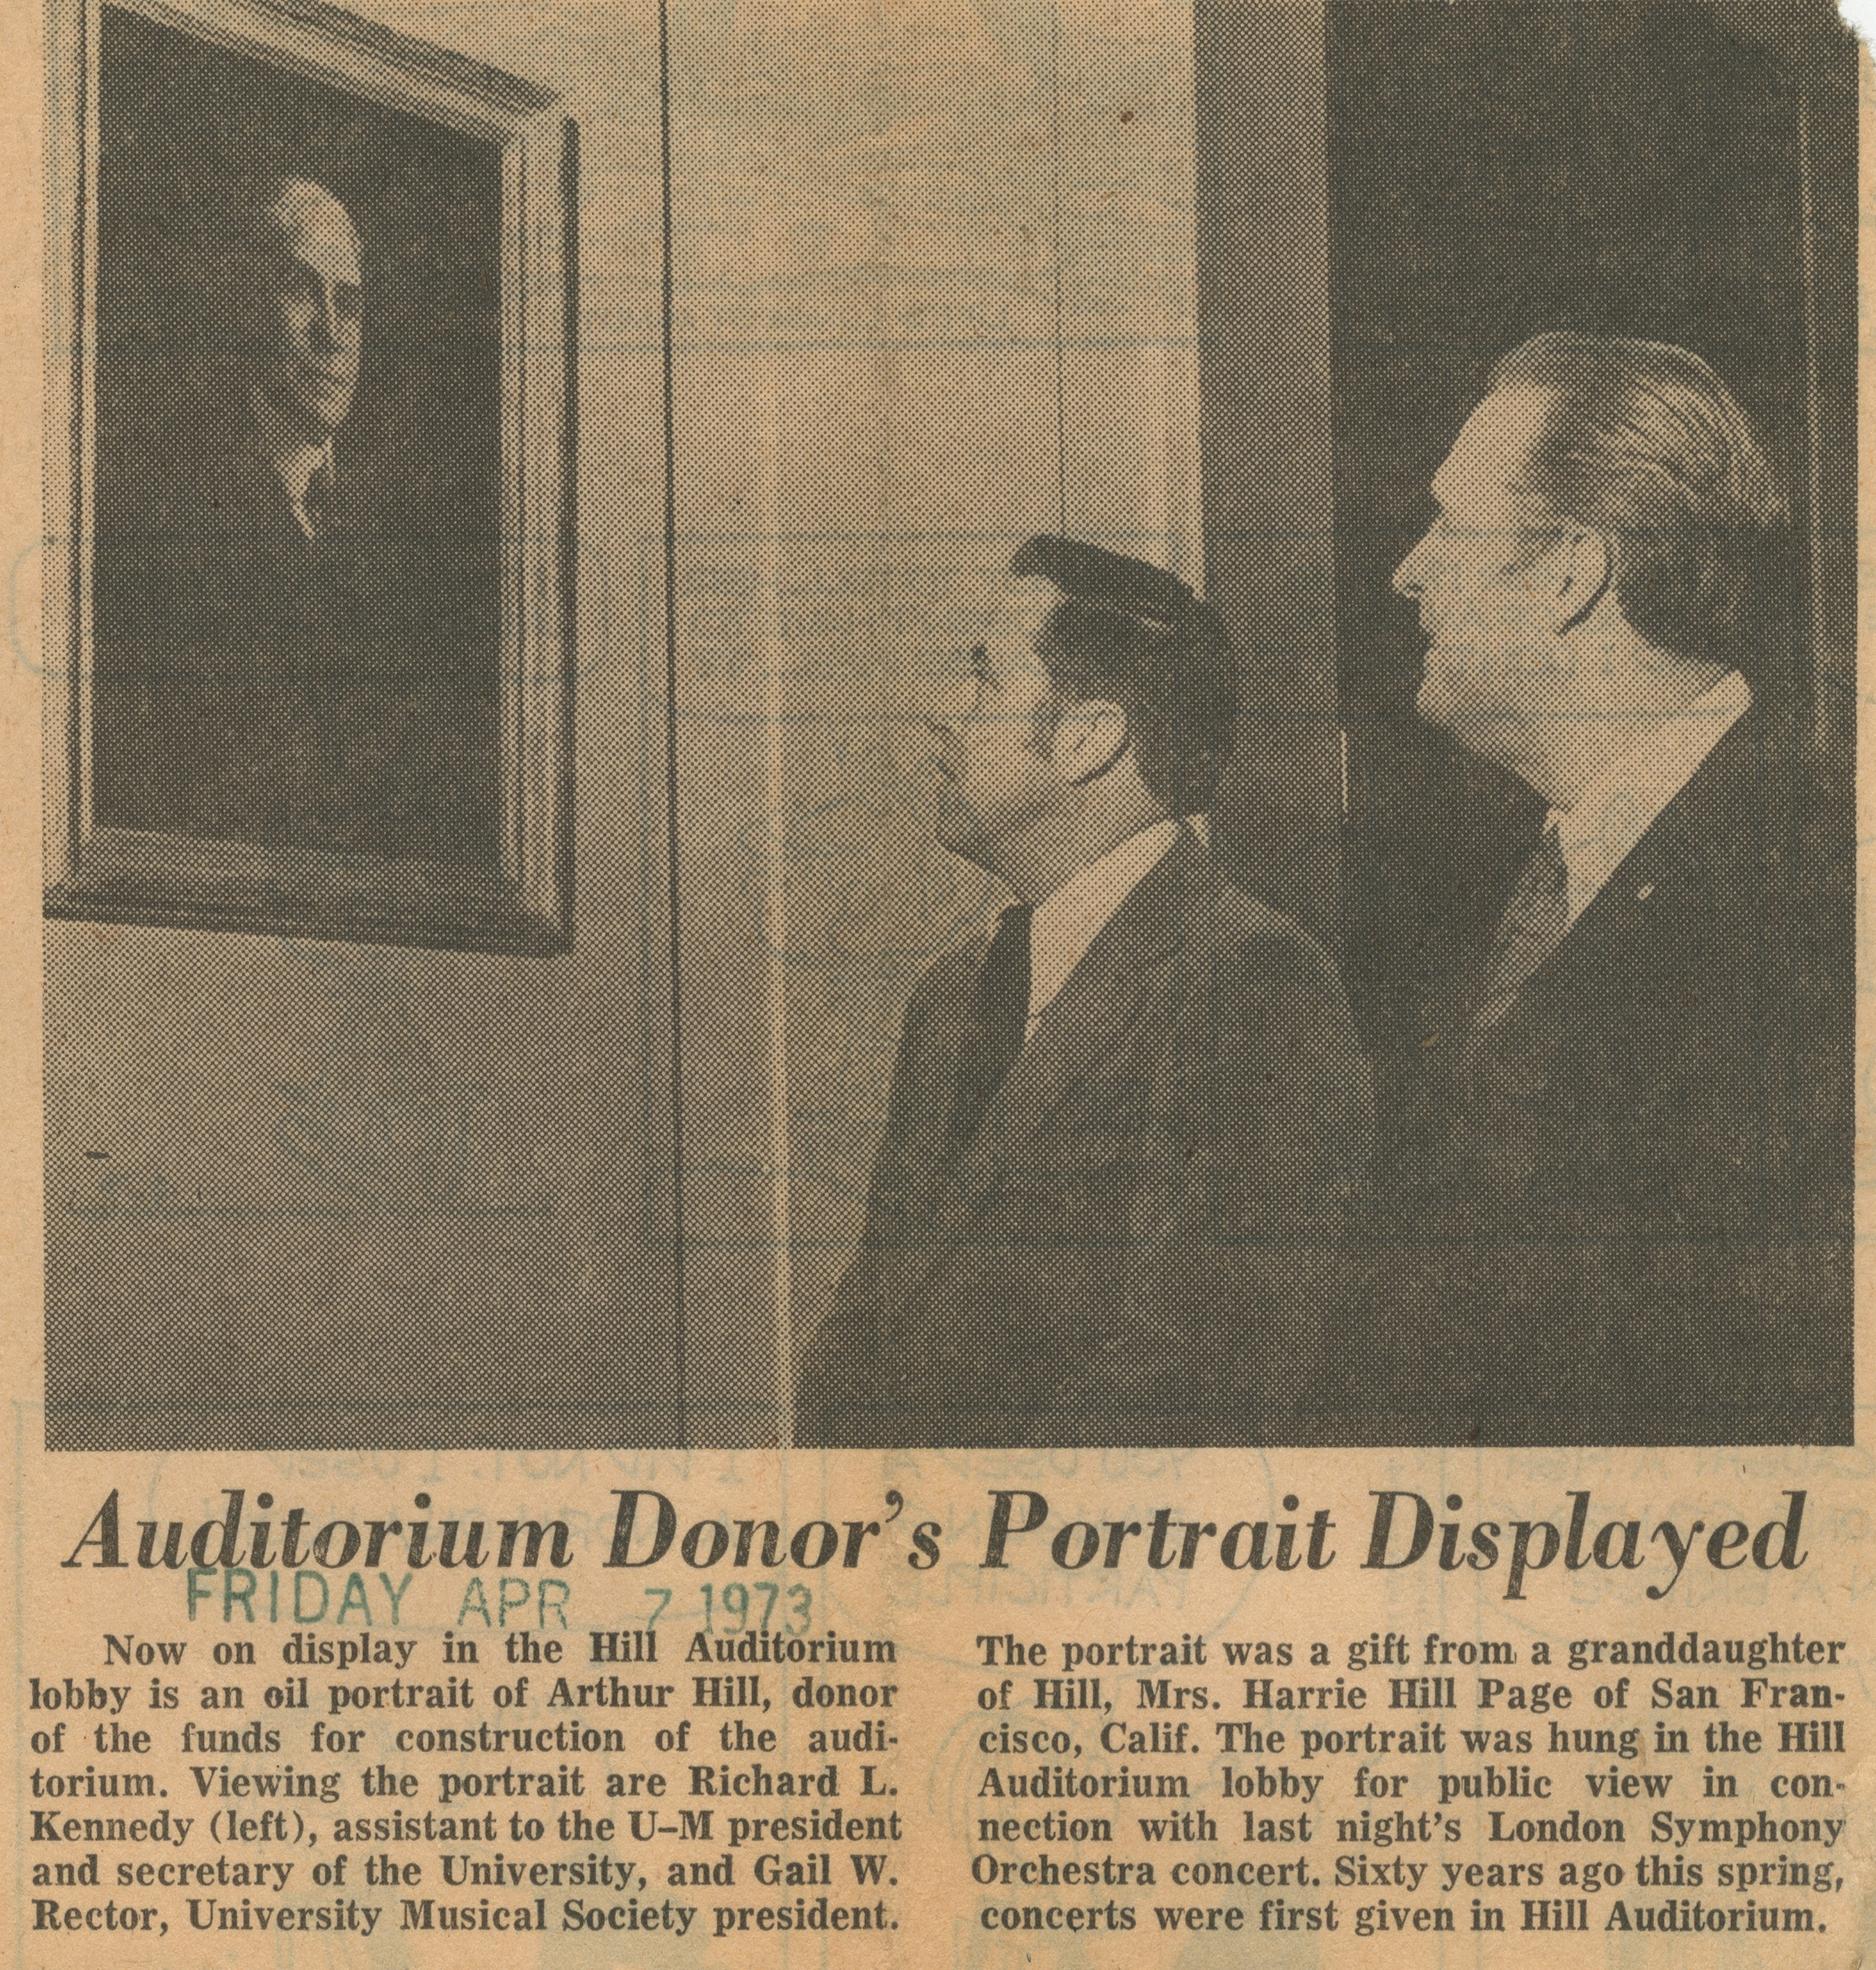 Auditorium Donor's Portrait Displayed image